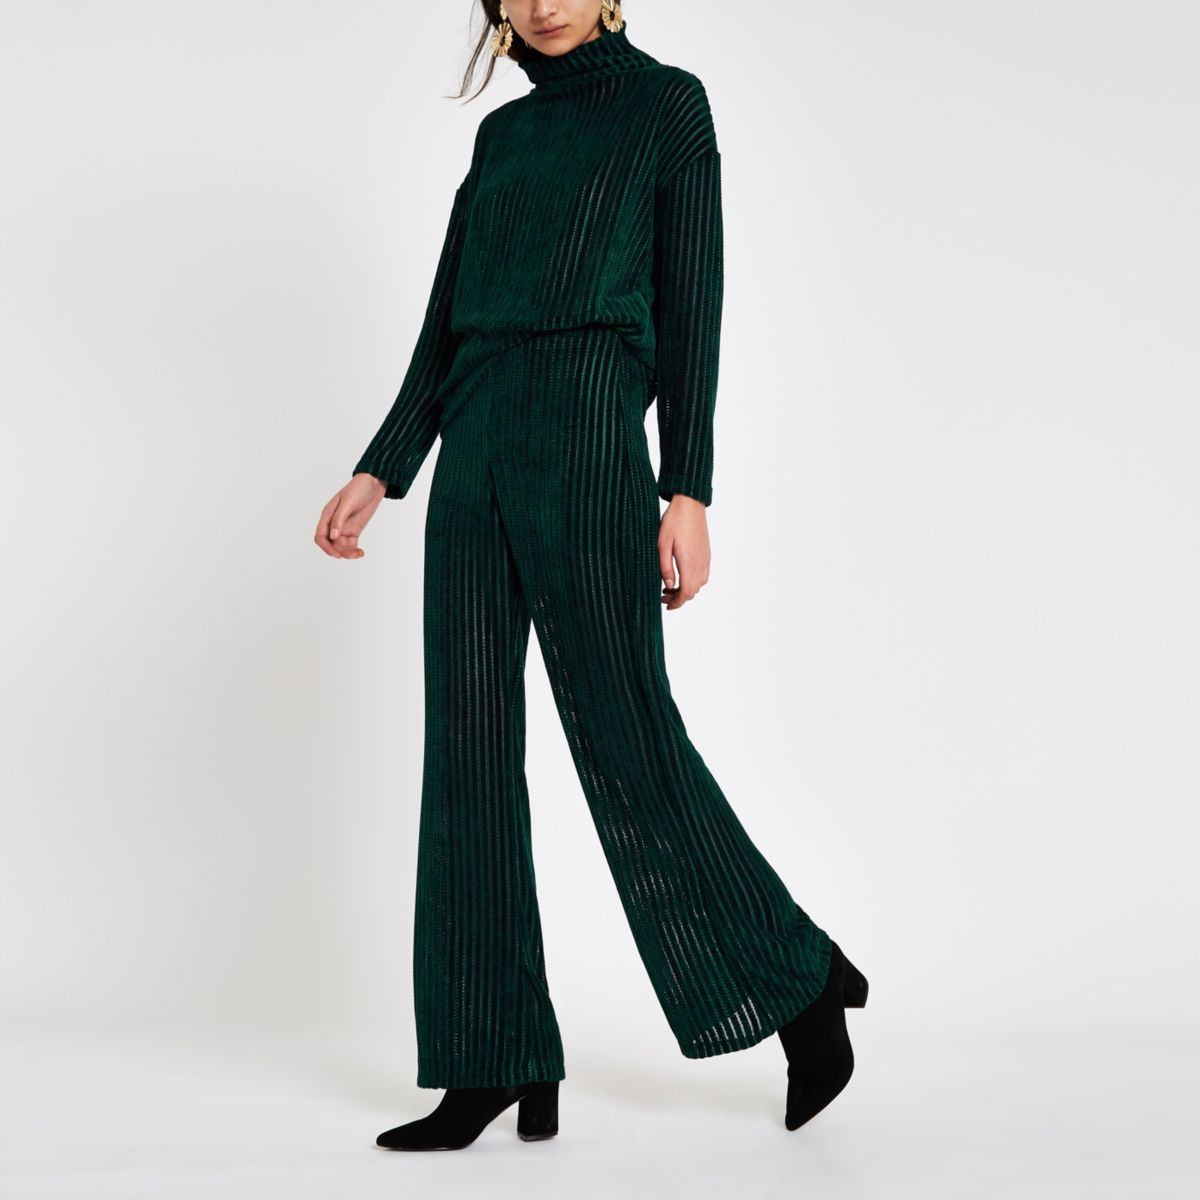 Dark green pull on wide leg trousers